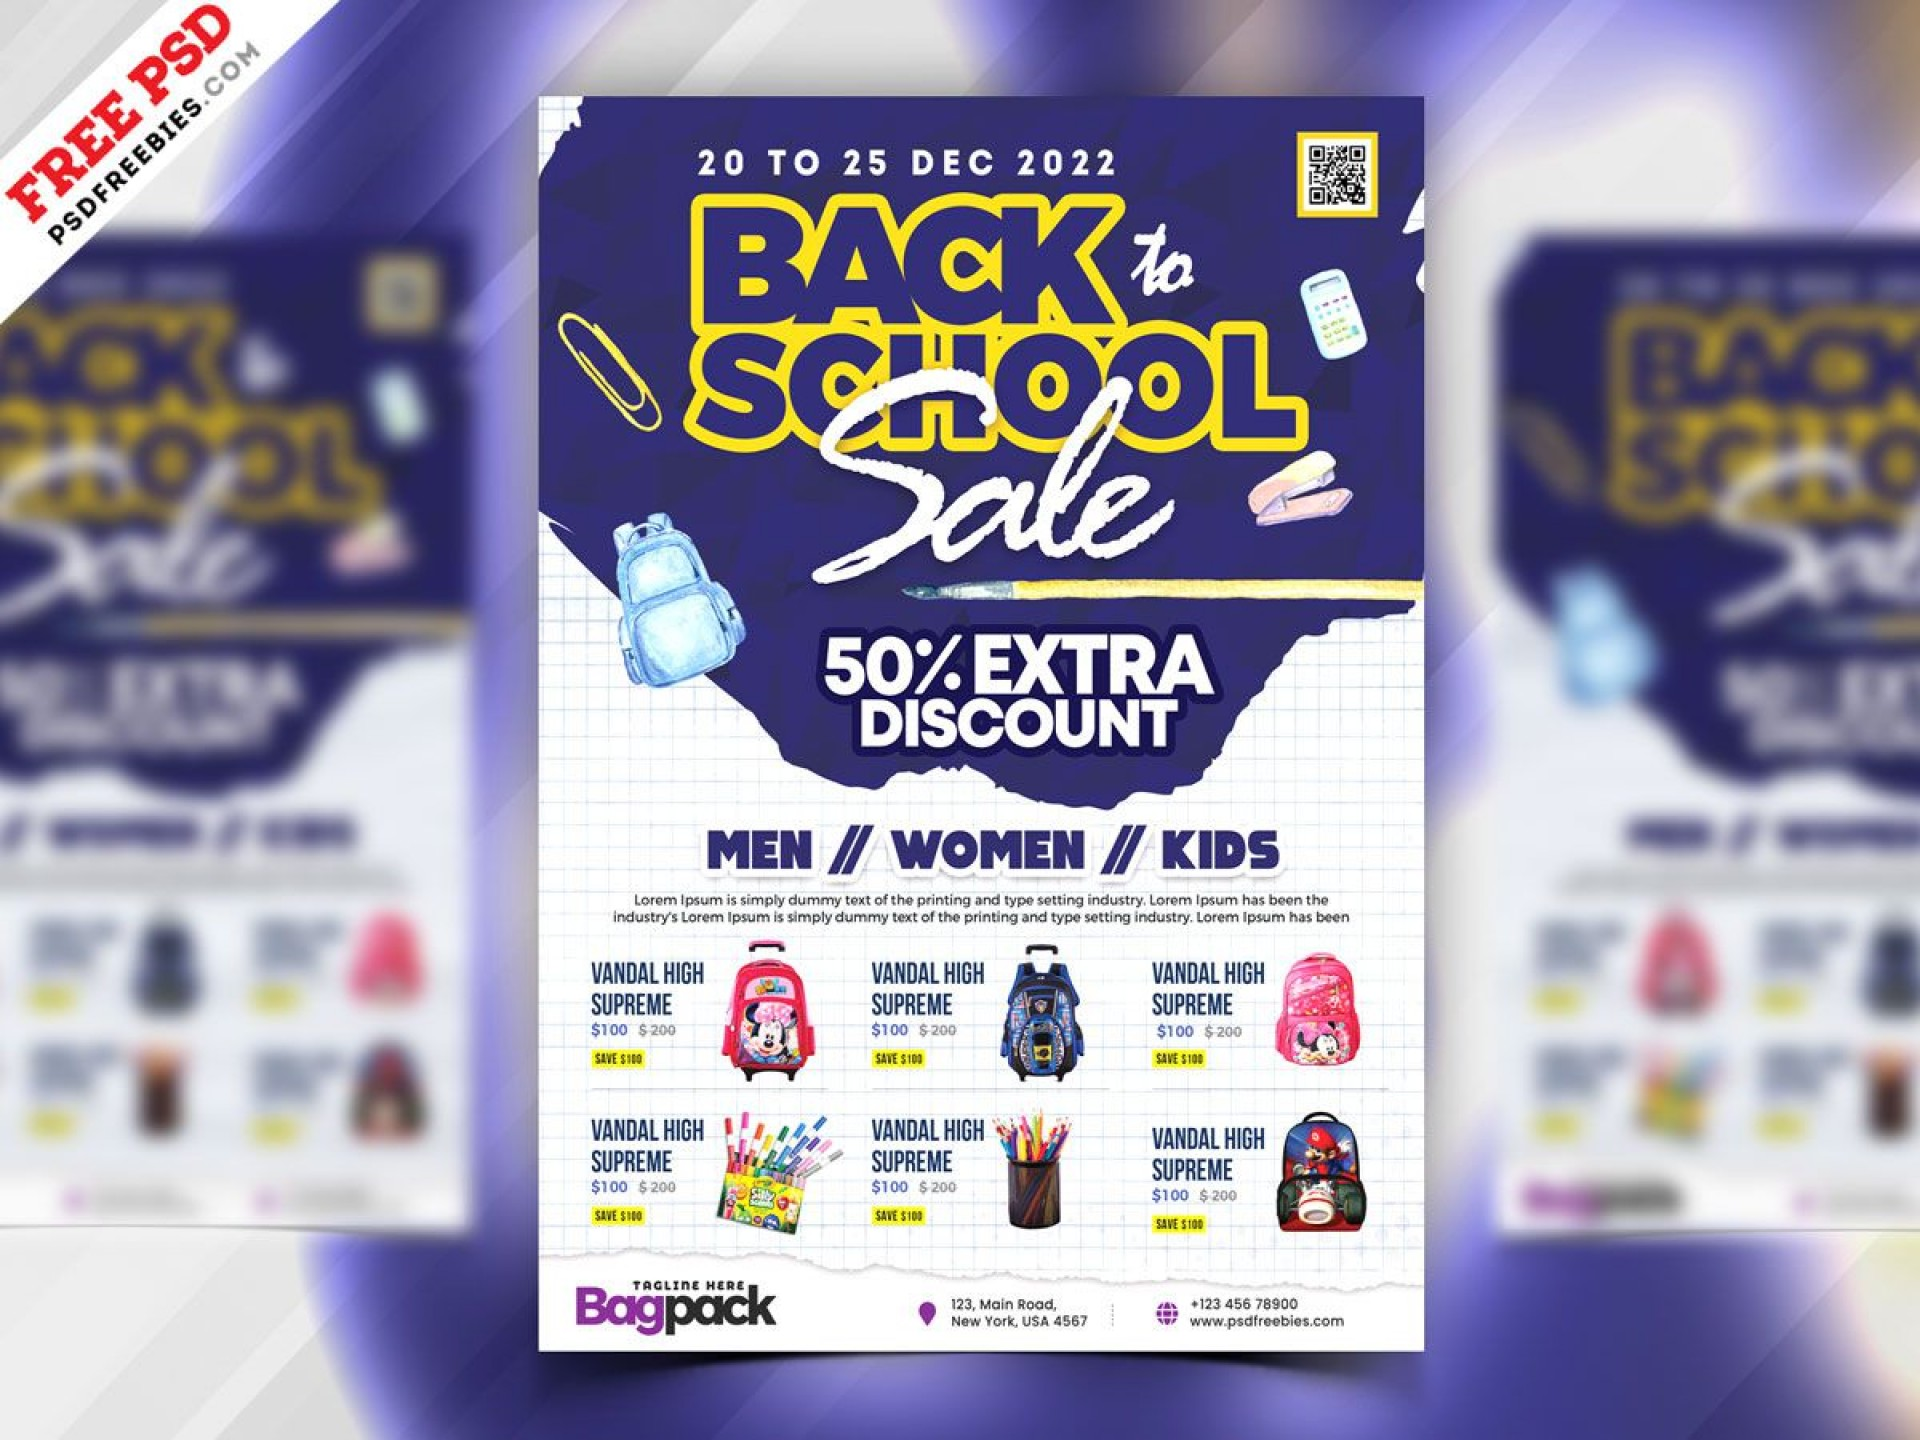 006 Awful Free Back To School Flyer Template Psd Image 1920